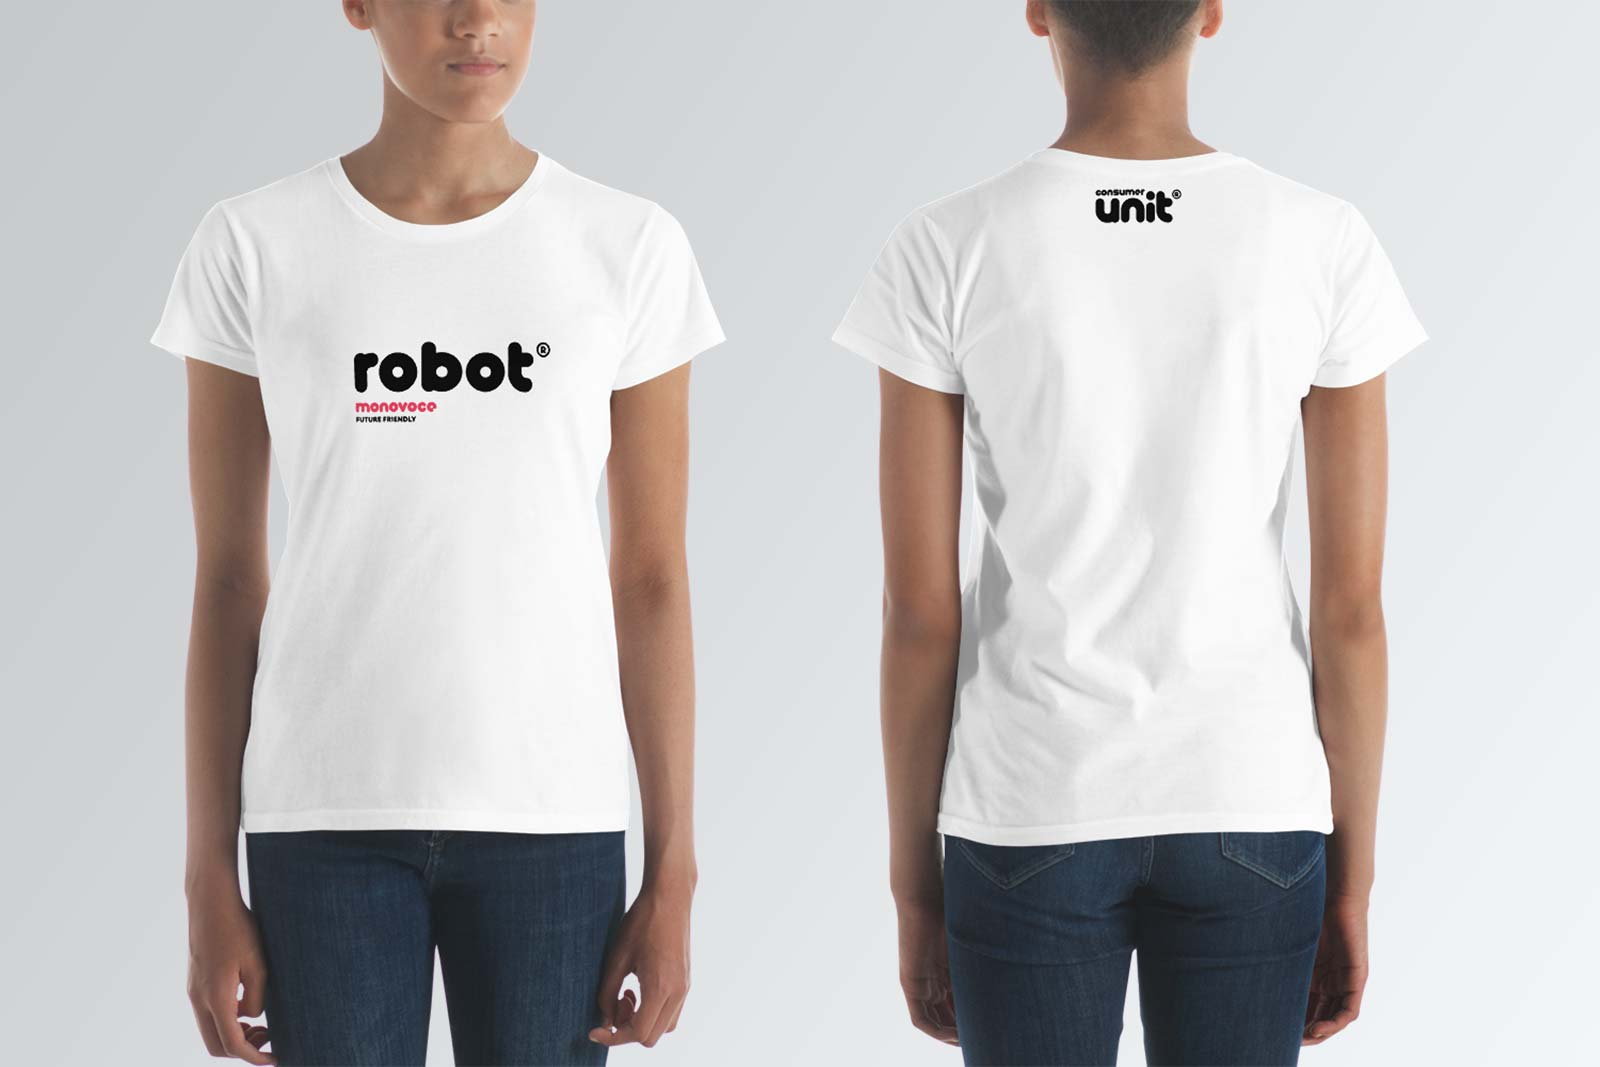 Robot t-shirt for women in white